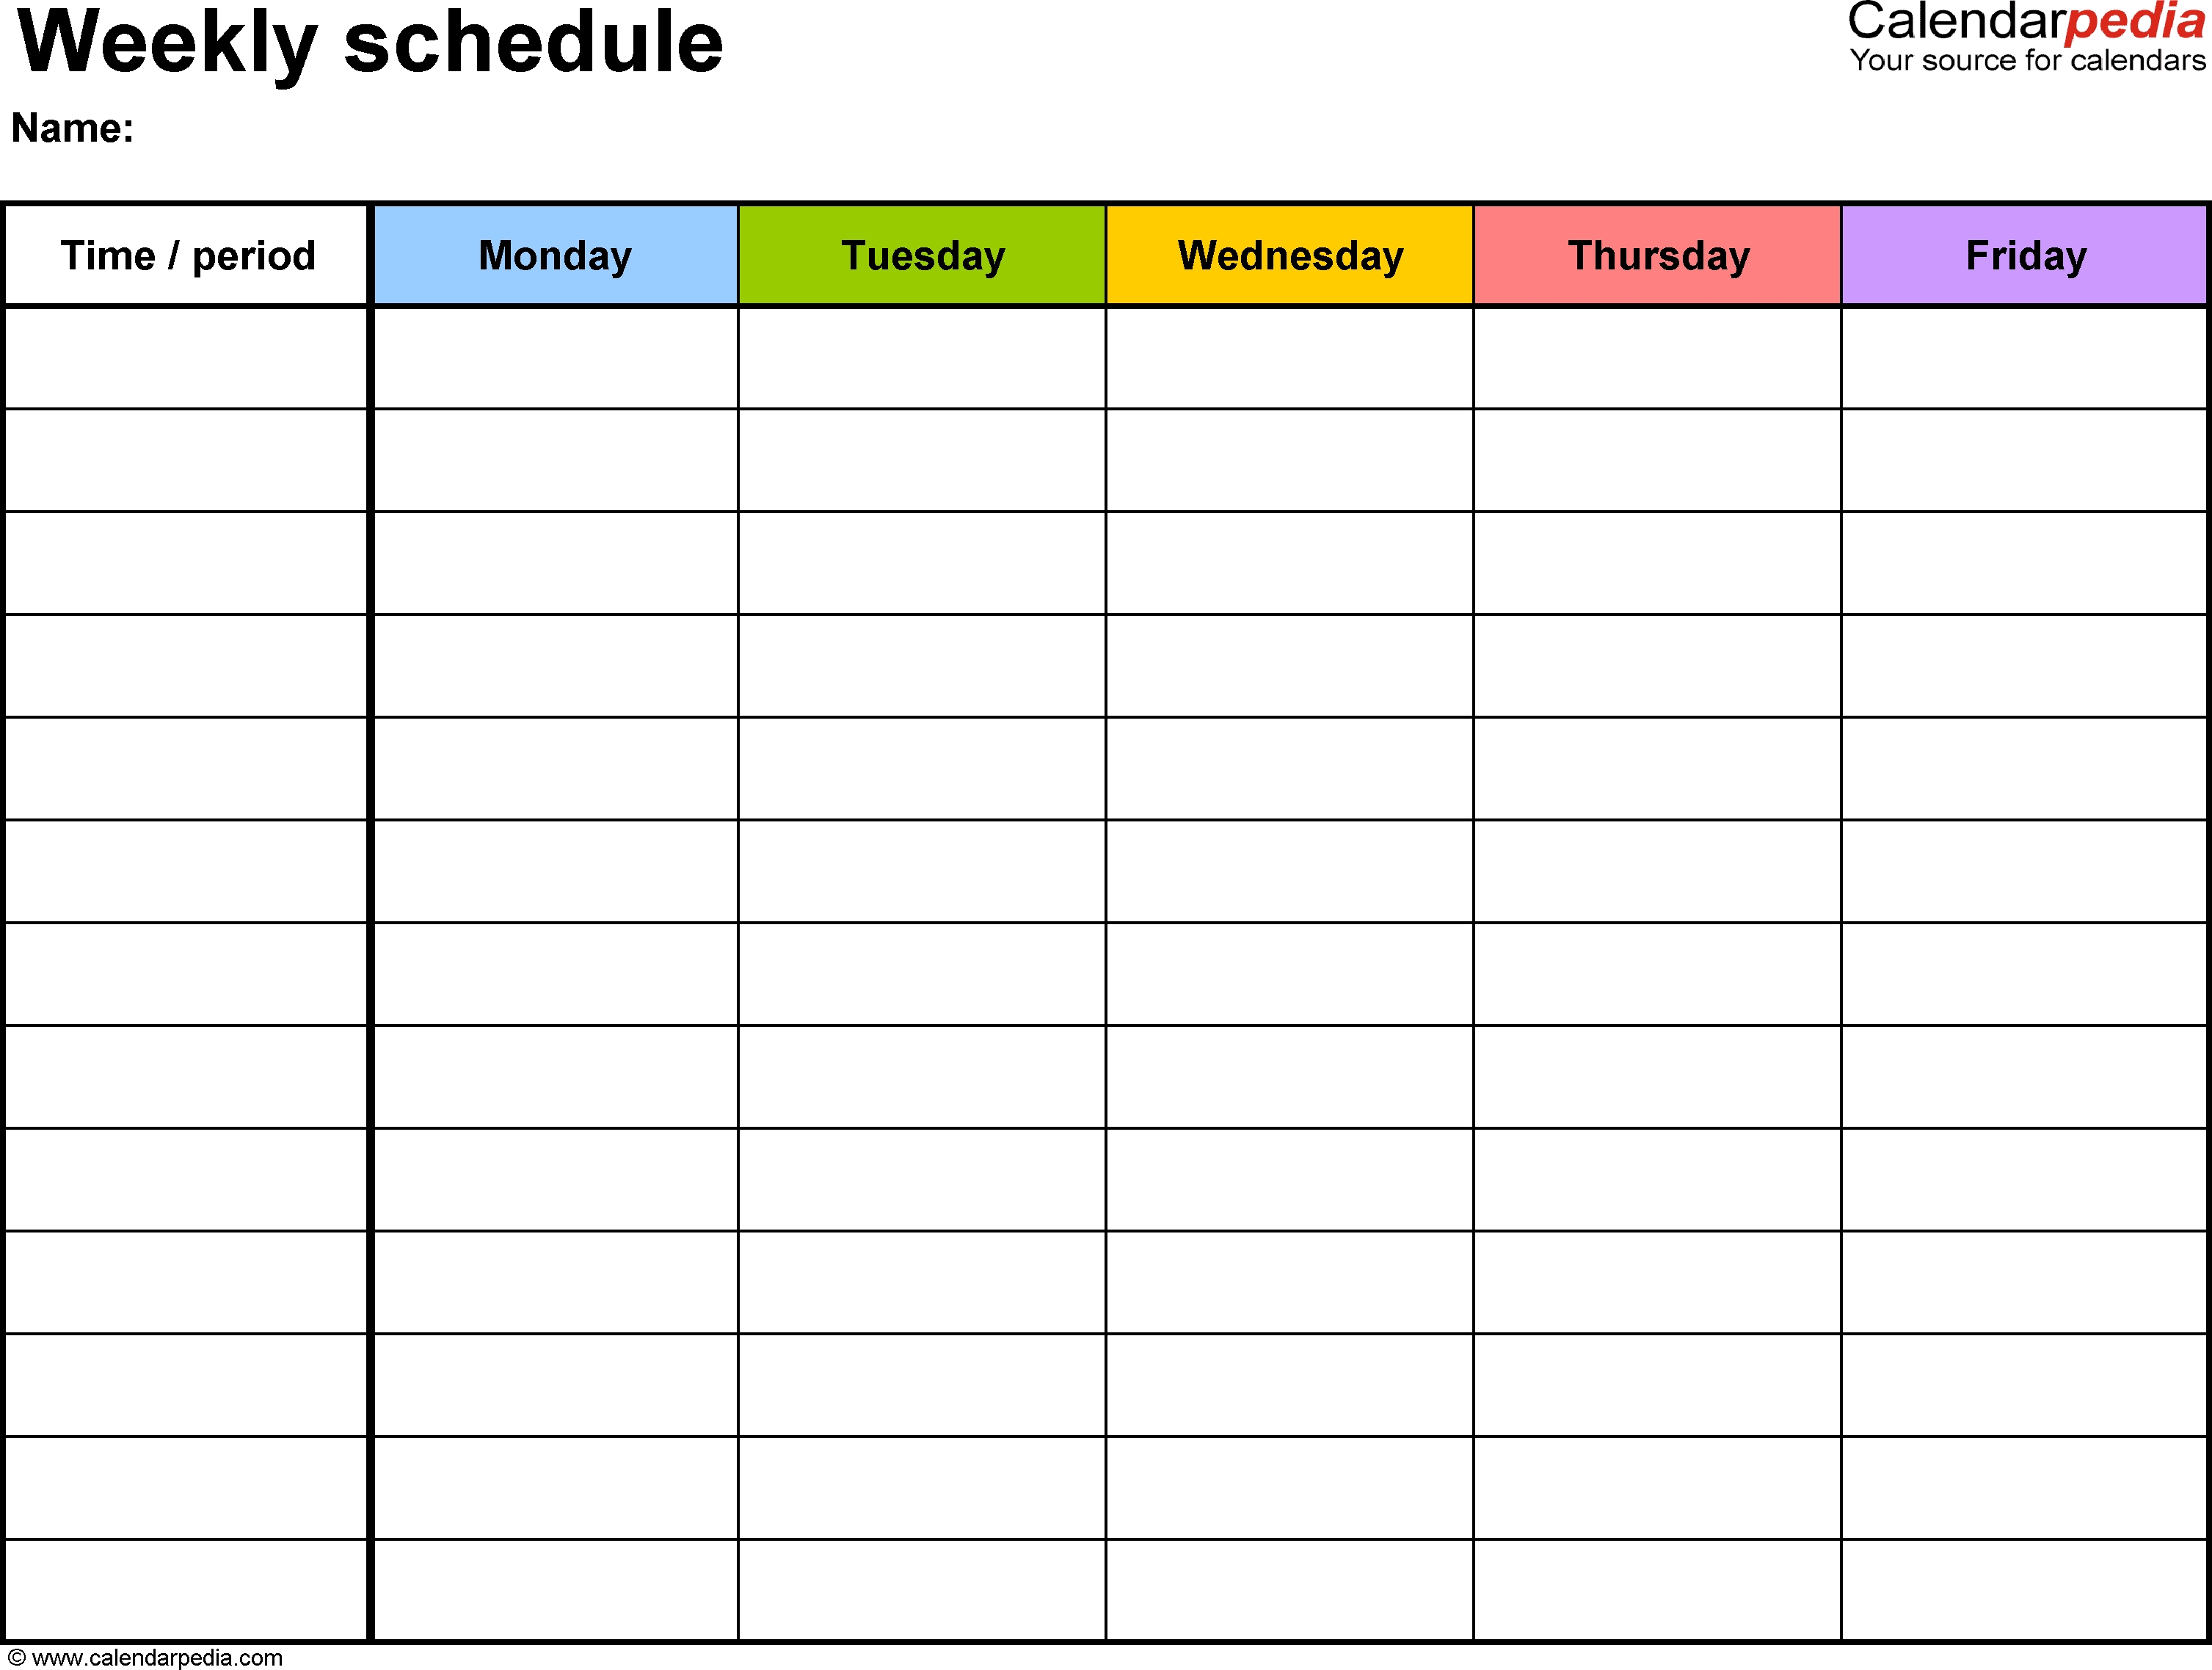 Weekly Schedule Template For Word Version 1: Landscape, 1-Preschool Word Excel Calendar Template